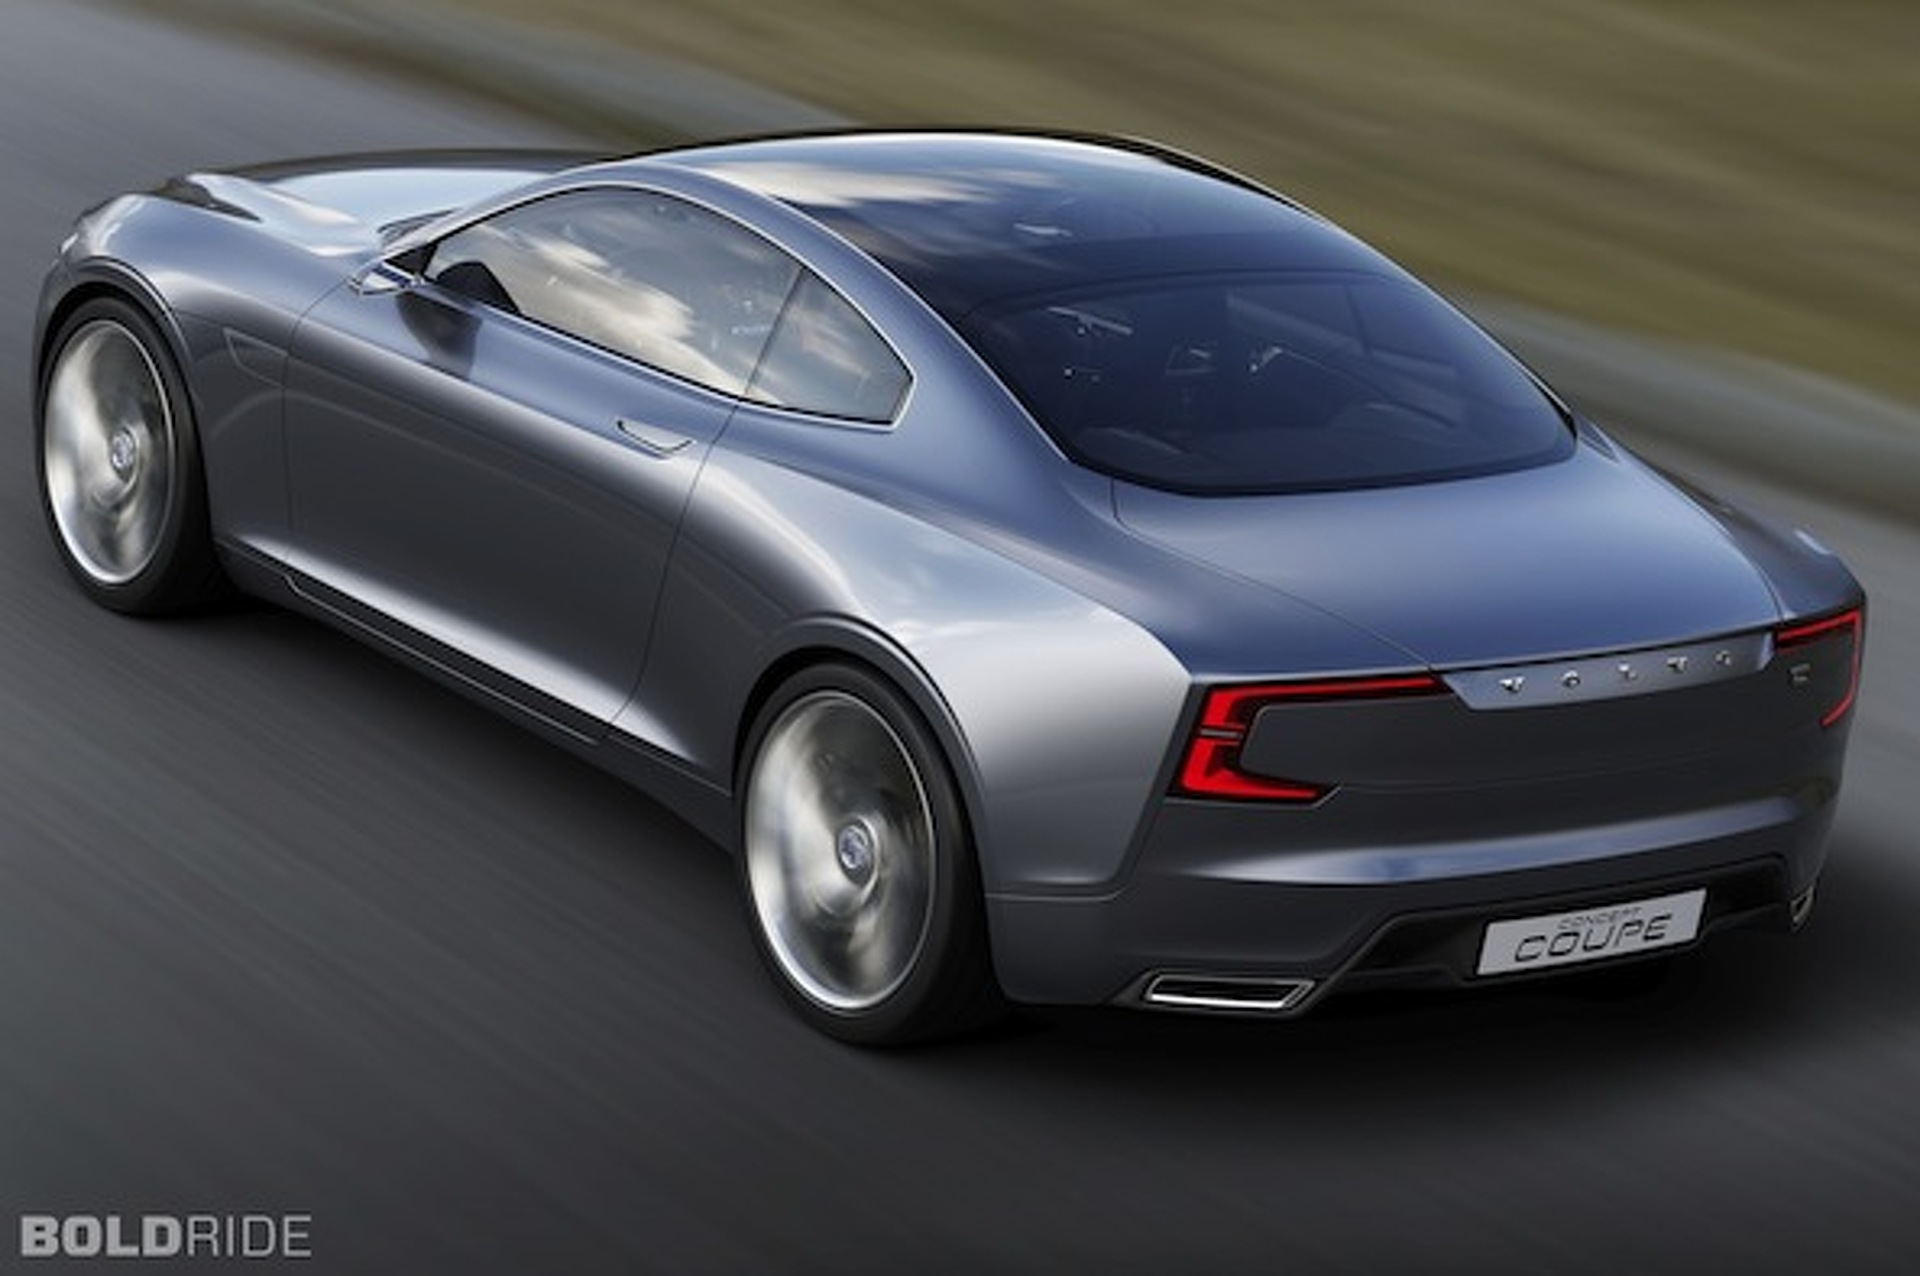 Volvo Concept Coupe Relives Memories of P1800 [w/video]